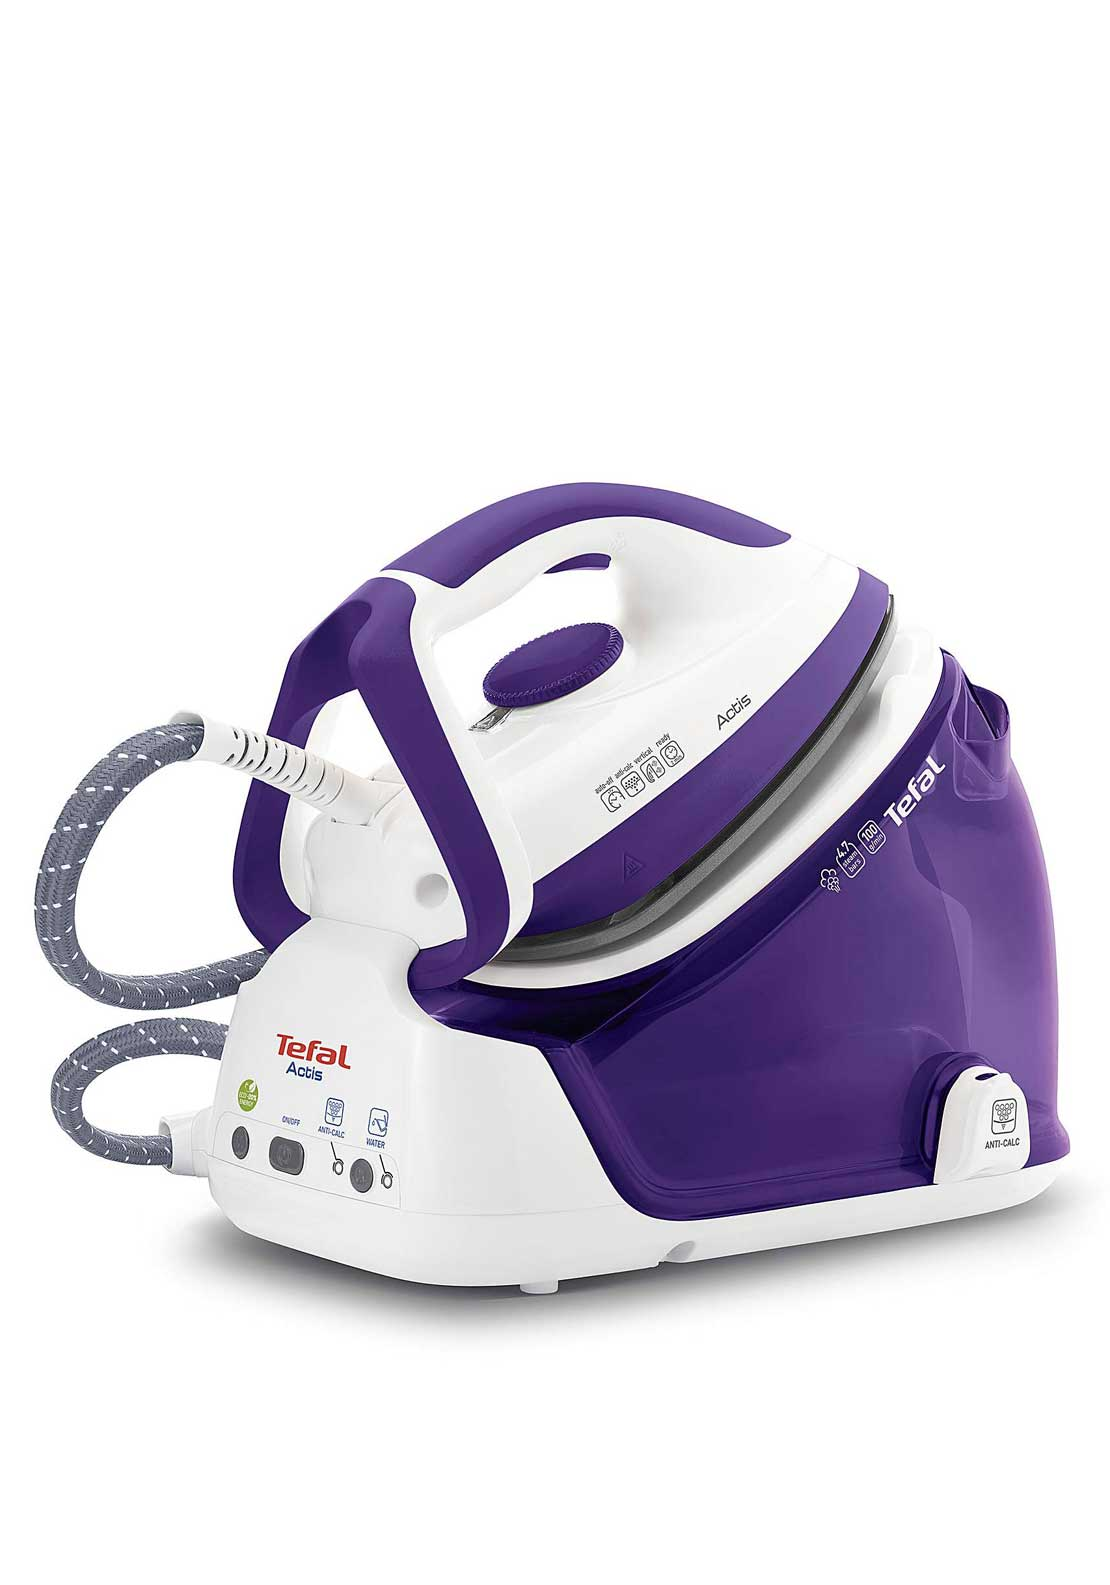 Tefal Actis High Pressure Steam Generator Iron, Purple and White